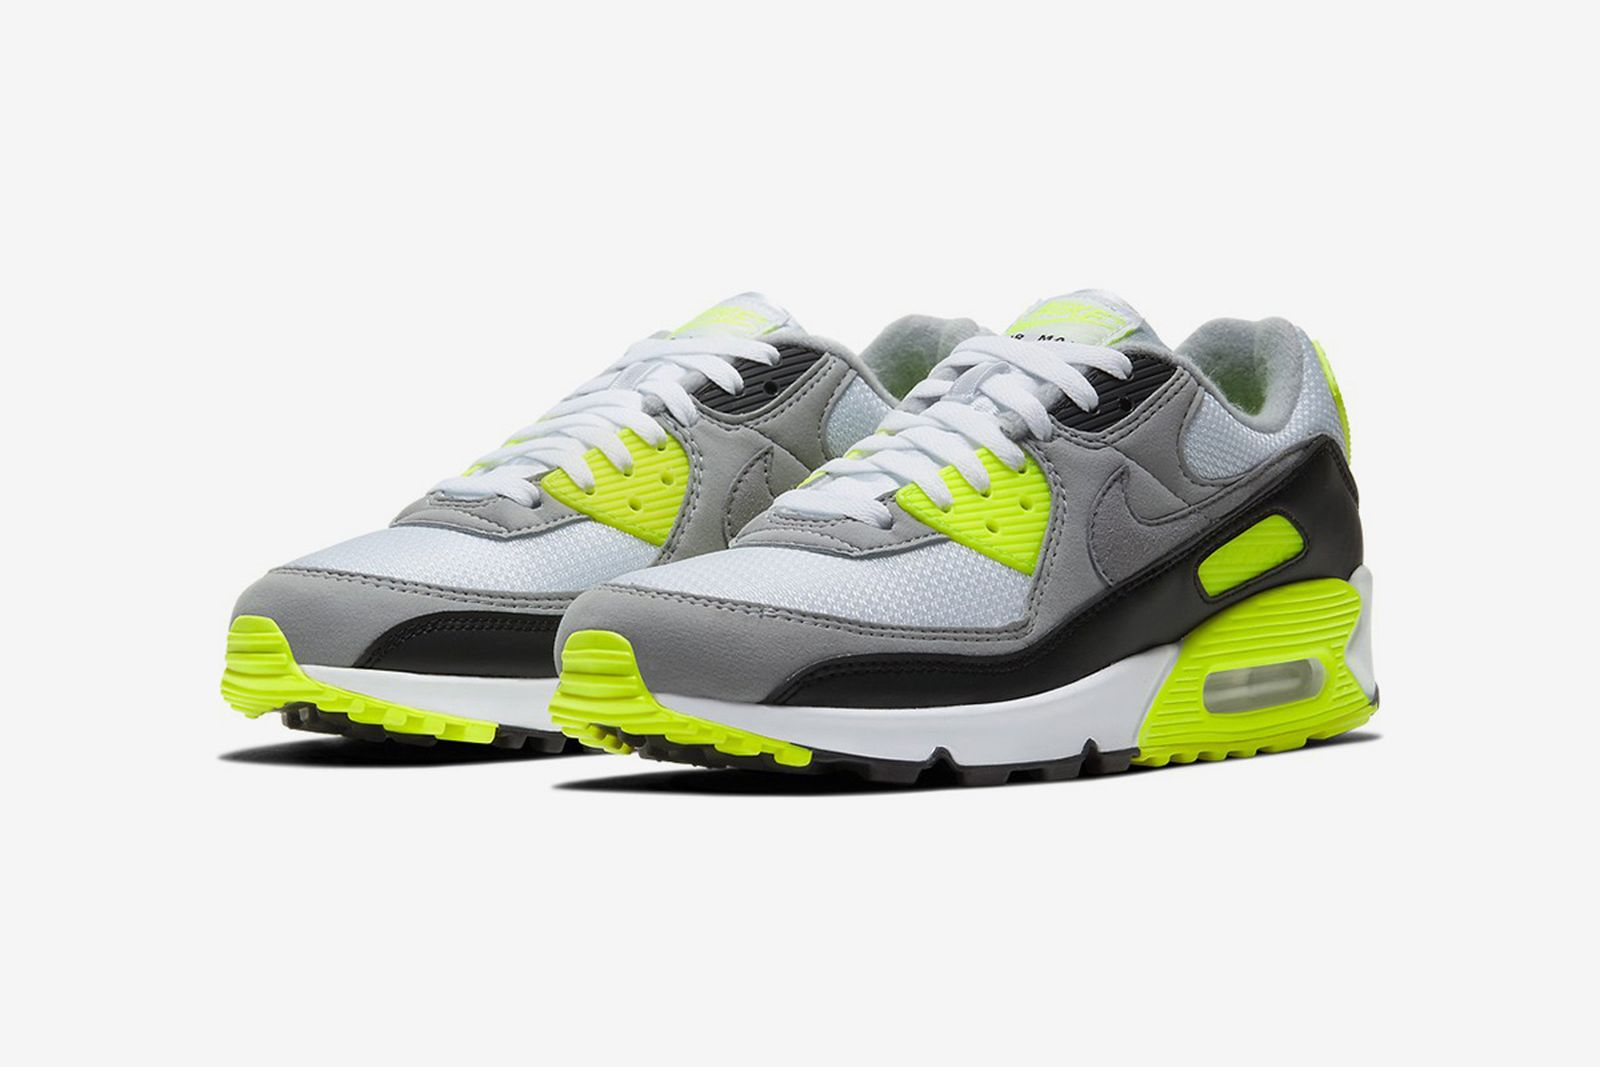 nike-air-max-90-30th-anniversary-colorways-release-date-price-1-13